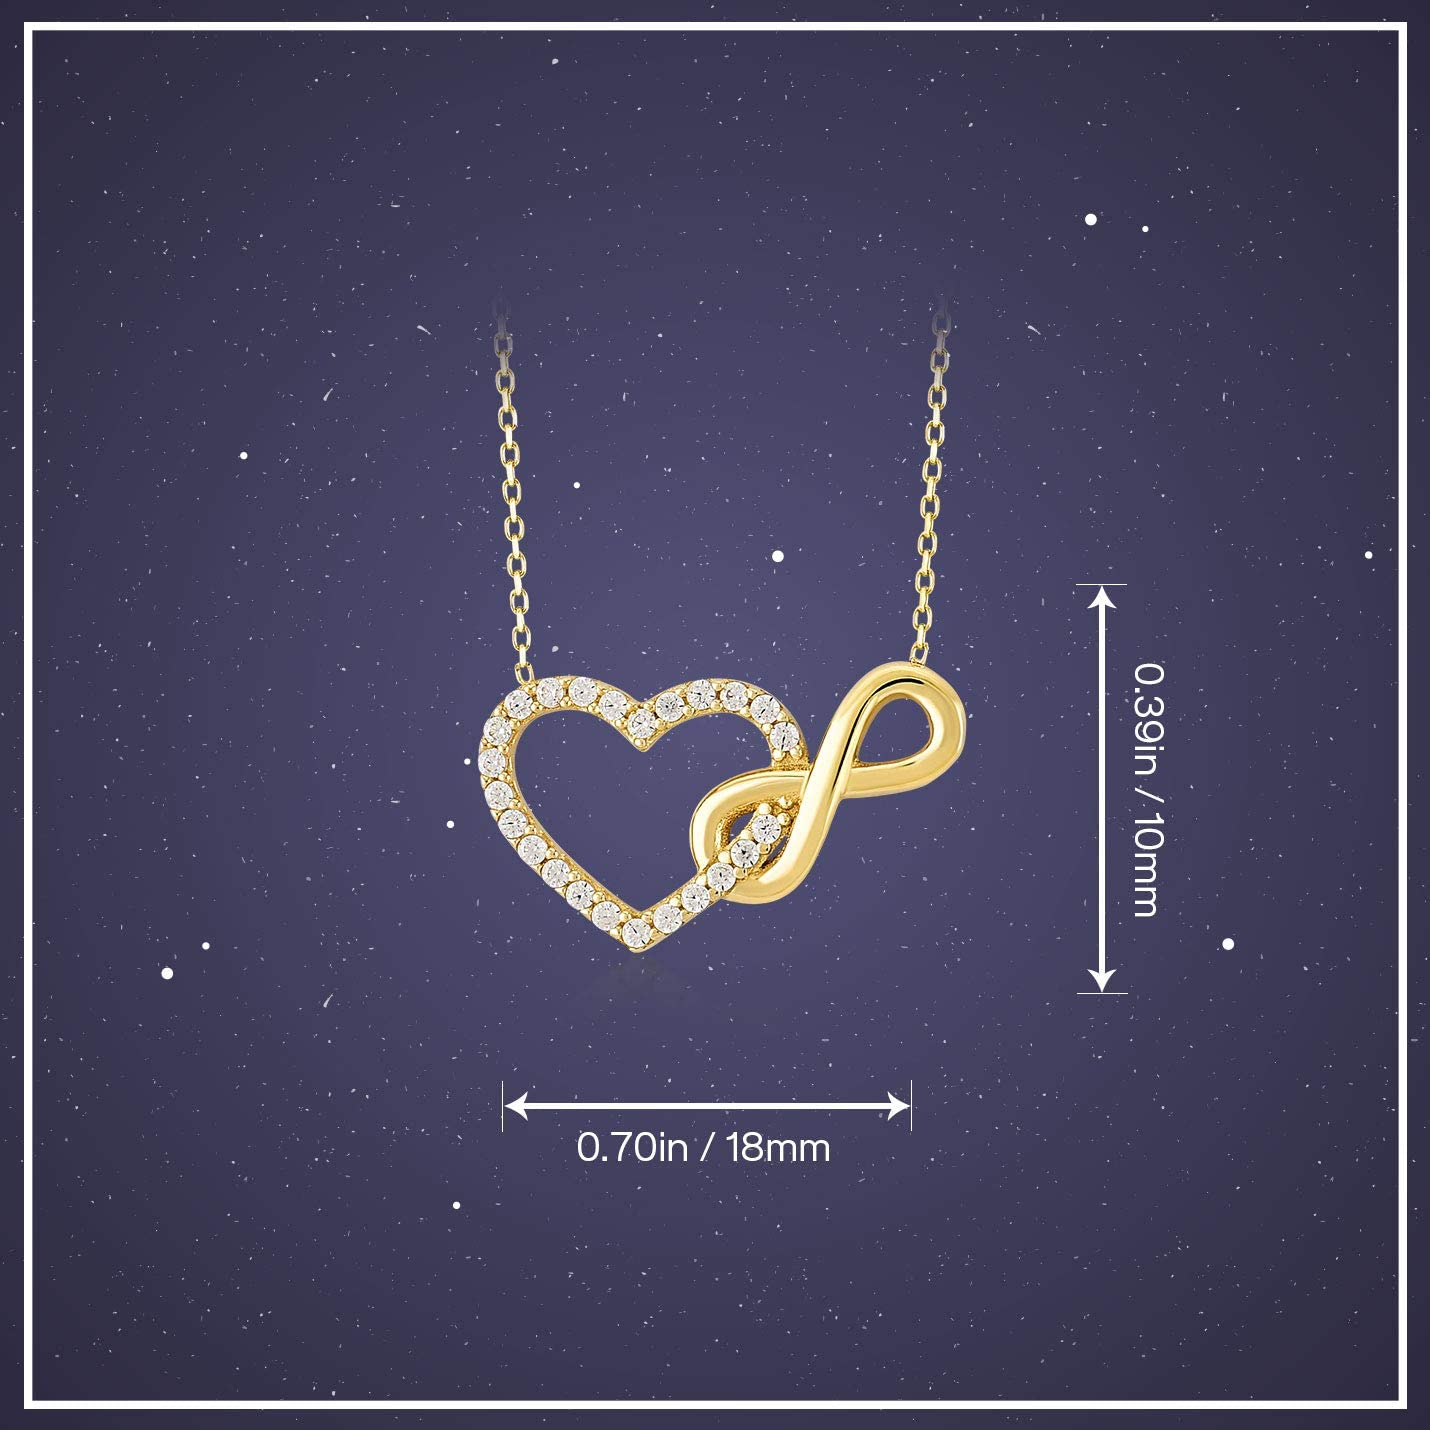 Gelin 14k Real Yellow Gold CZ Infinity and Heart Connected Pendant Chain Necklace for Women 18 inch